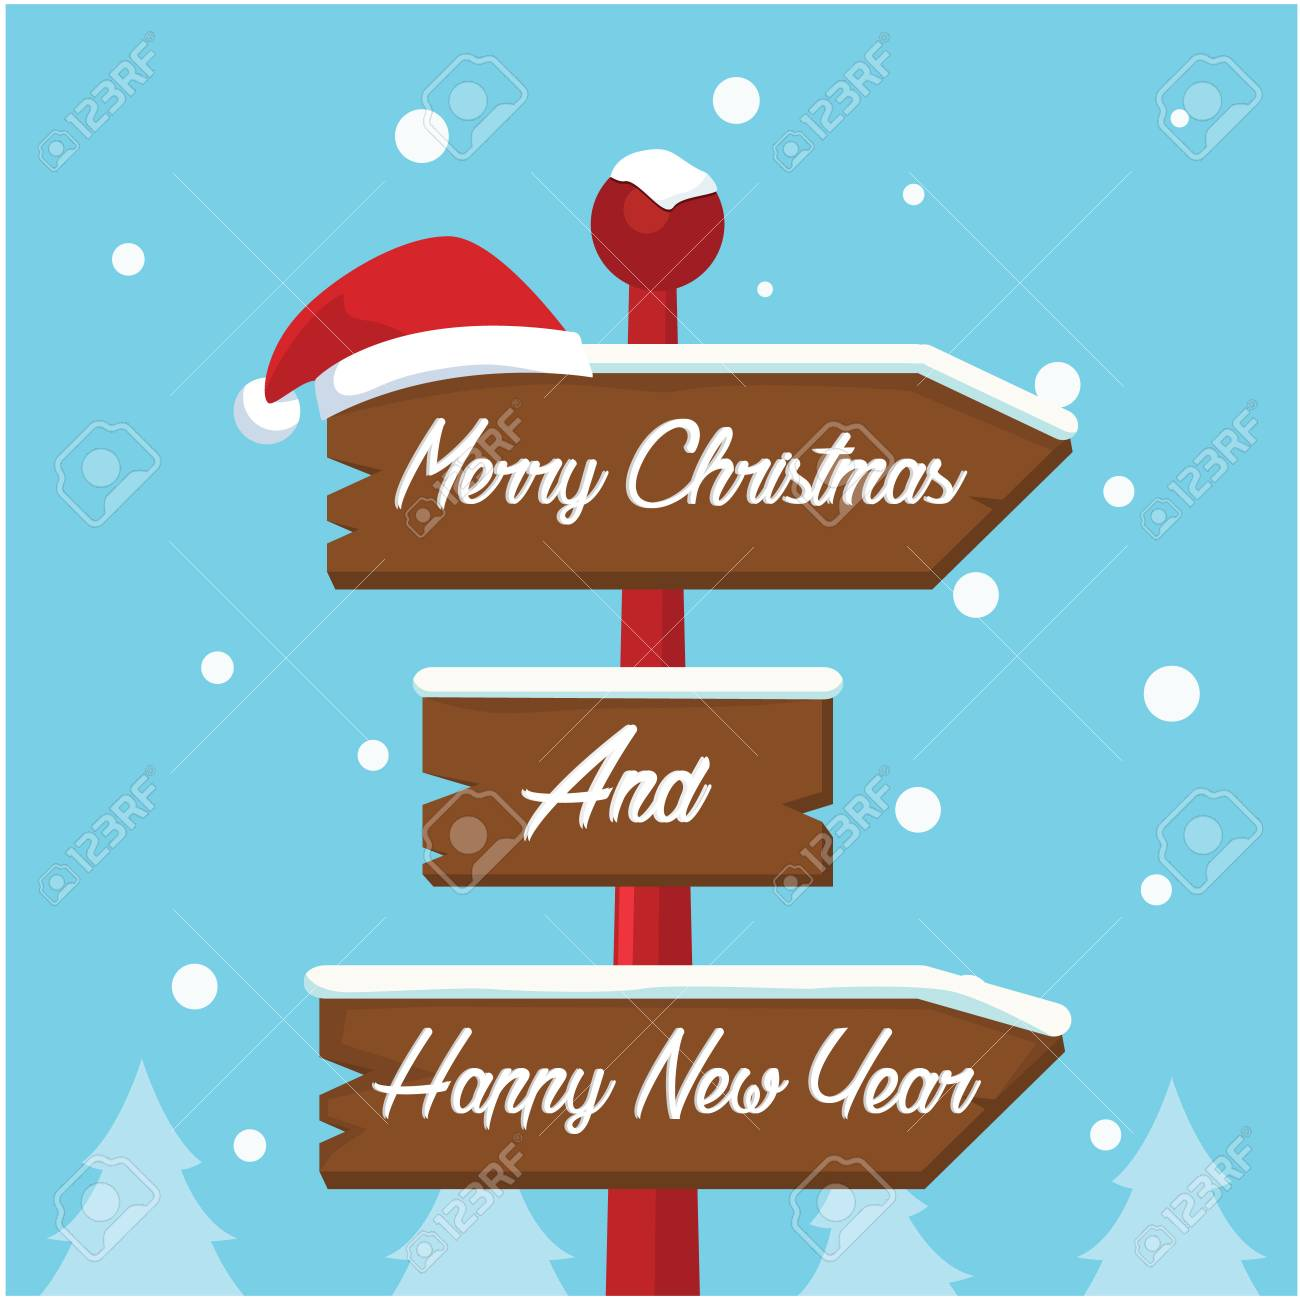 merry christmas sign illustration design royalty free cliparts